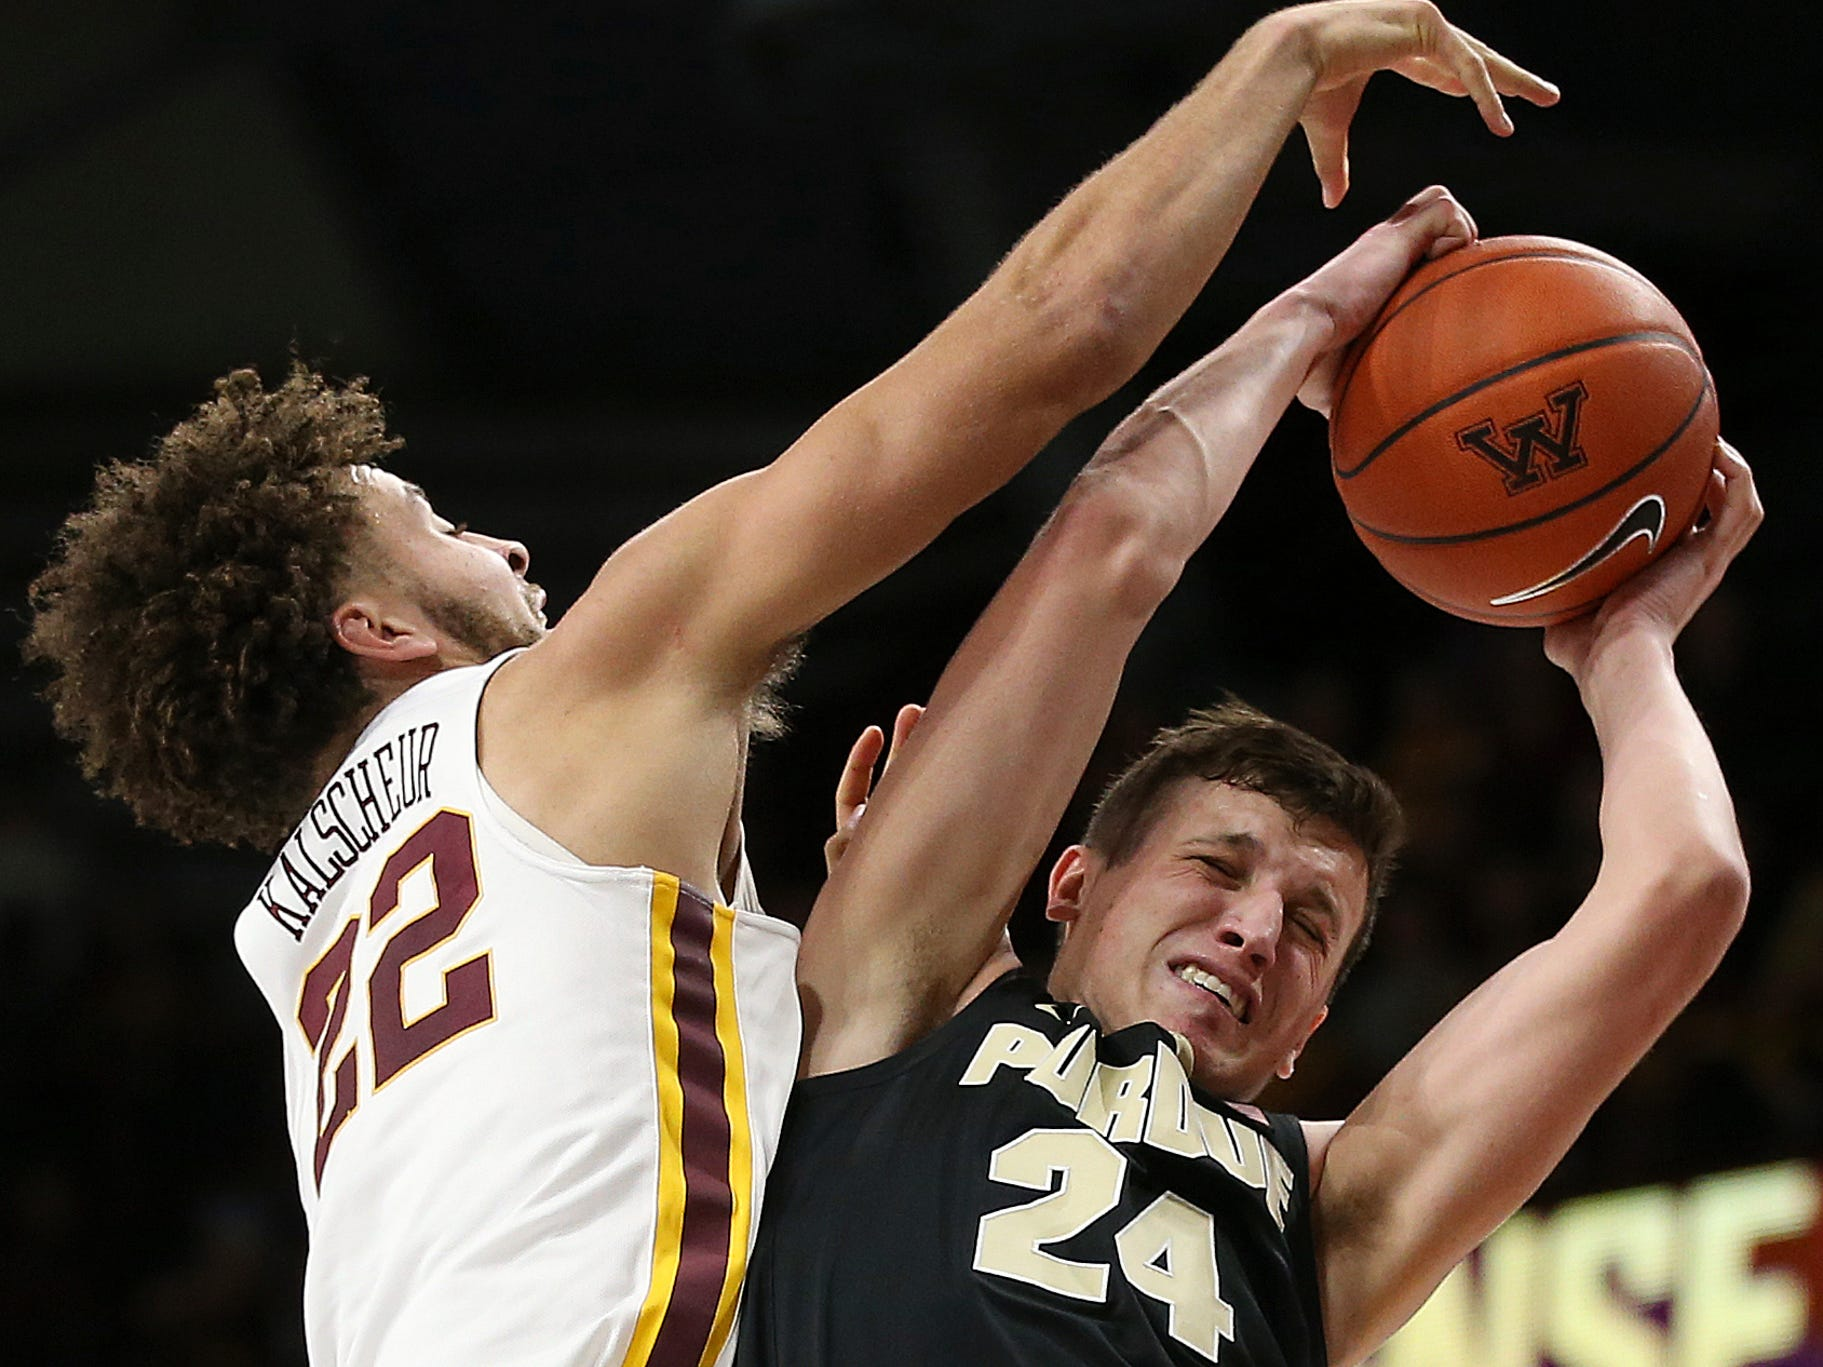 Purdue's Grady Eifert tries to hold onto the ball against Minnesota's guard Gabe Kalscheur during the second half of an NCAA basketball game Tuesday, March 5, 2019, in Minneapolis. Minnesota won 73-69.